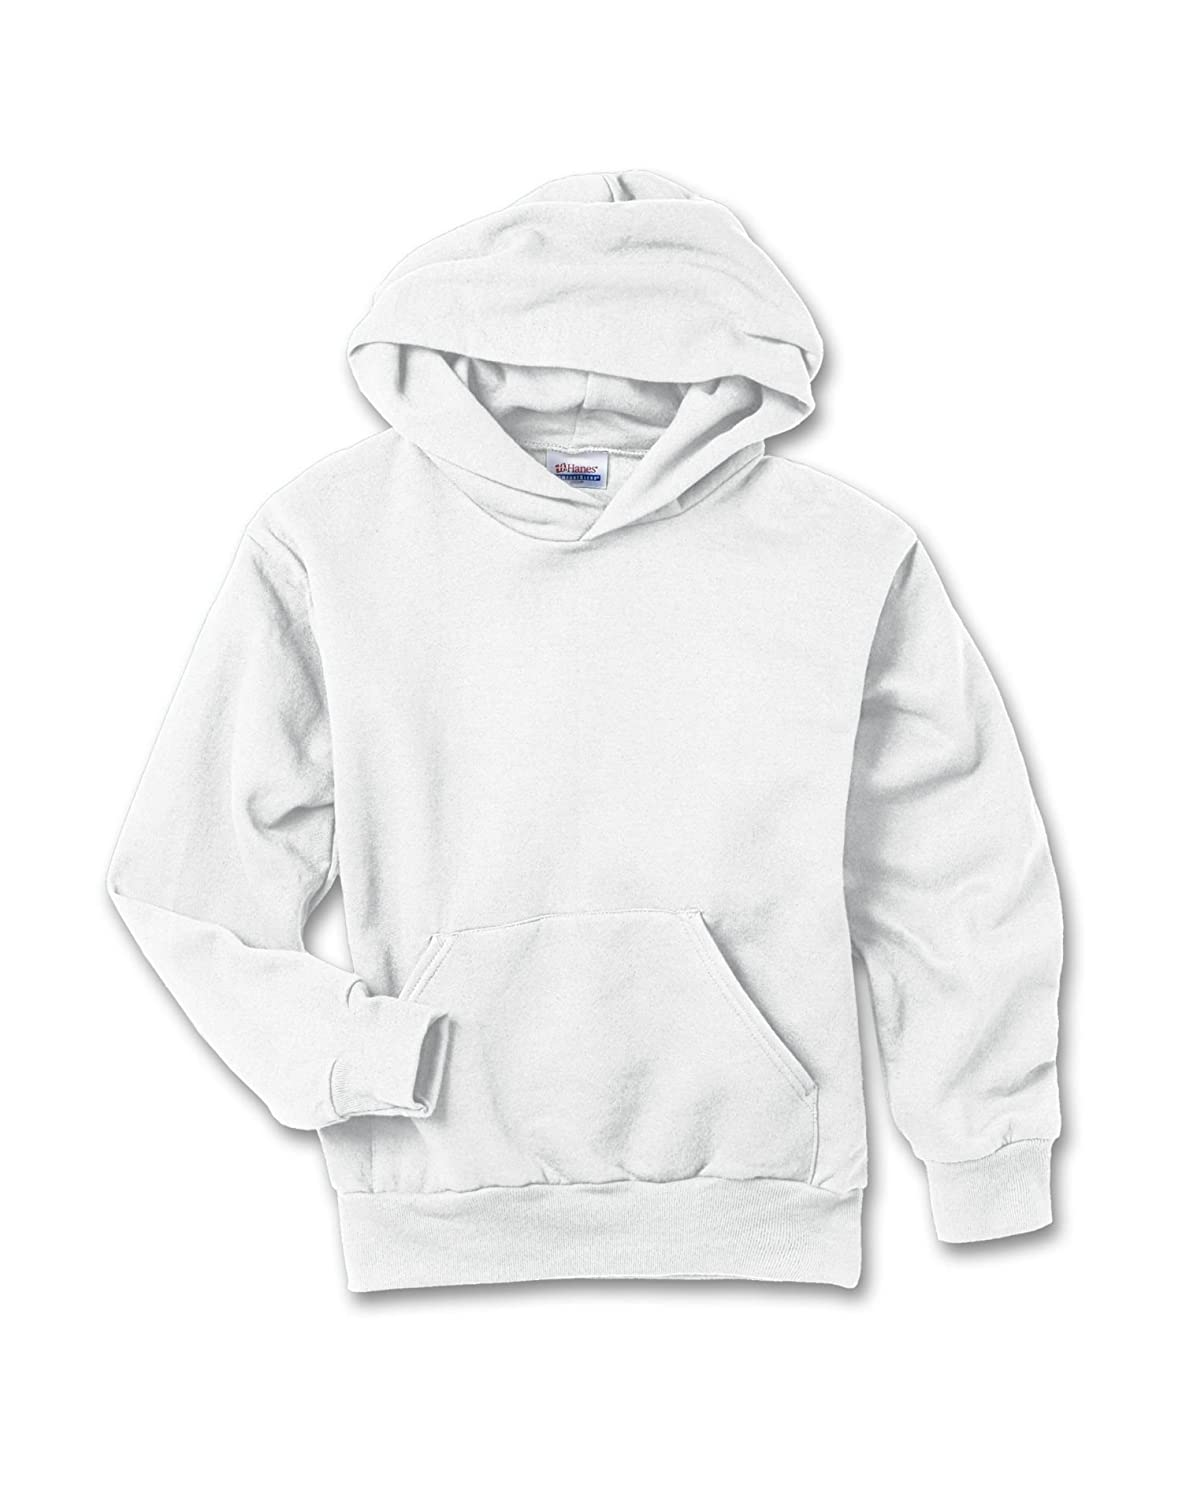 L Hanes Youth 7.8 oz White ComfortBlend 50//50 Pullover Hood